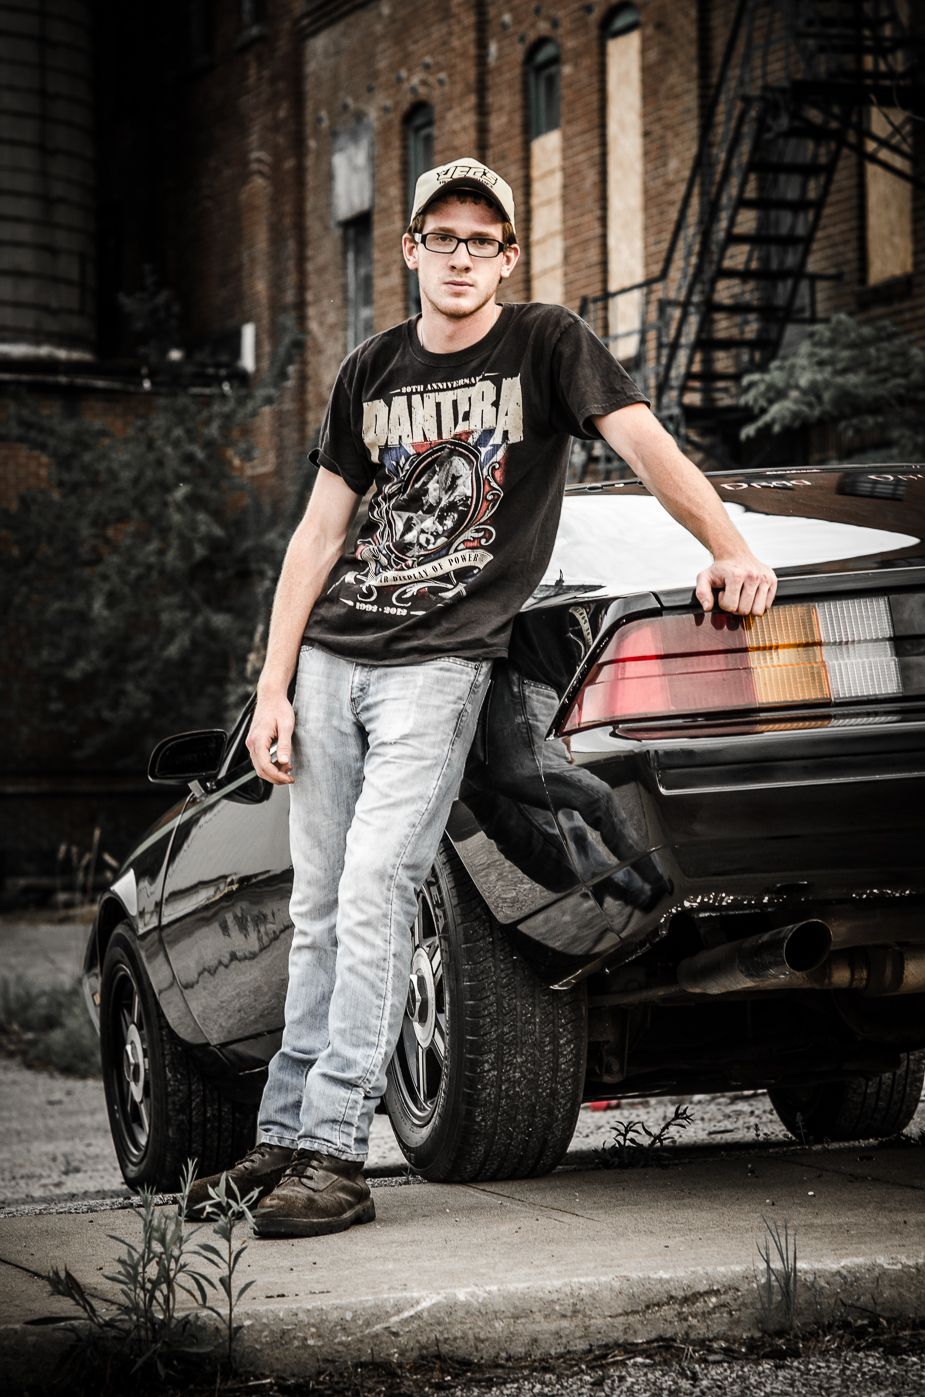 High School Senior photo session with car – Canal Fulton Photographer Joel Echelberger